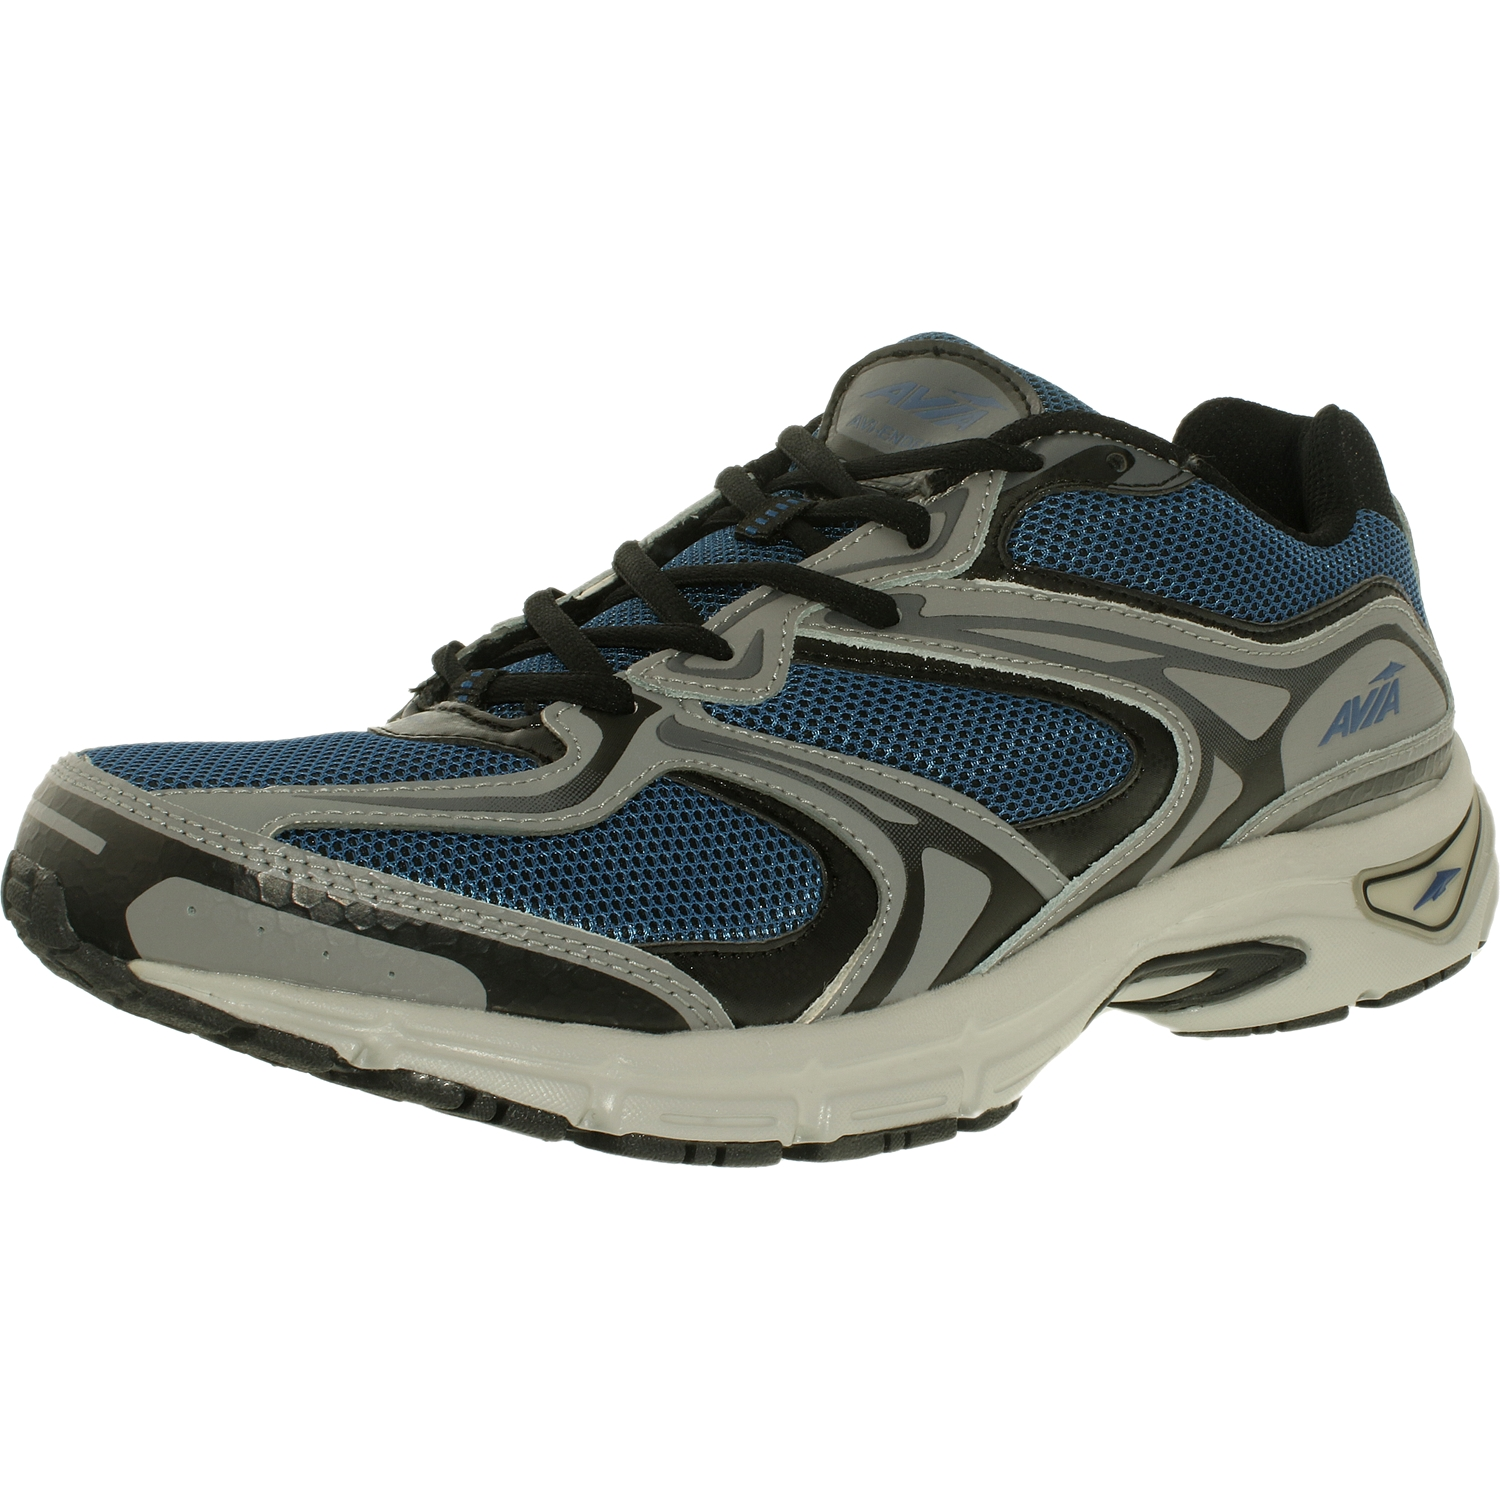 Avia Men's Endeavor M Navy/Black/Grey Ankle-High Synthetic Cross Trainer Shoe - 8.5W